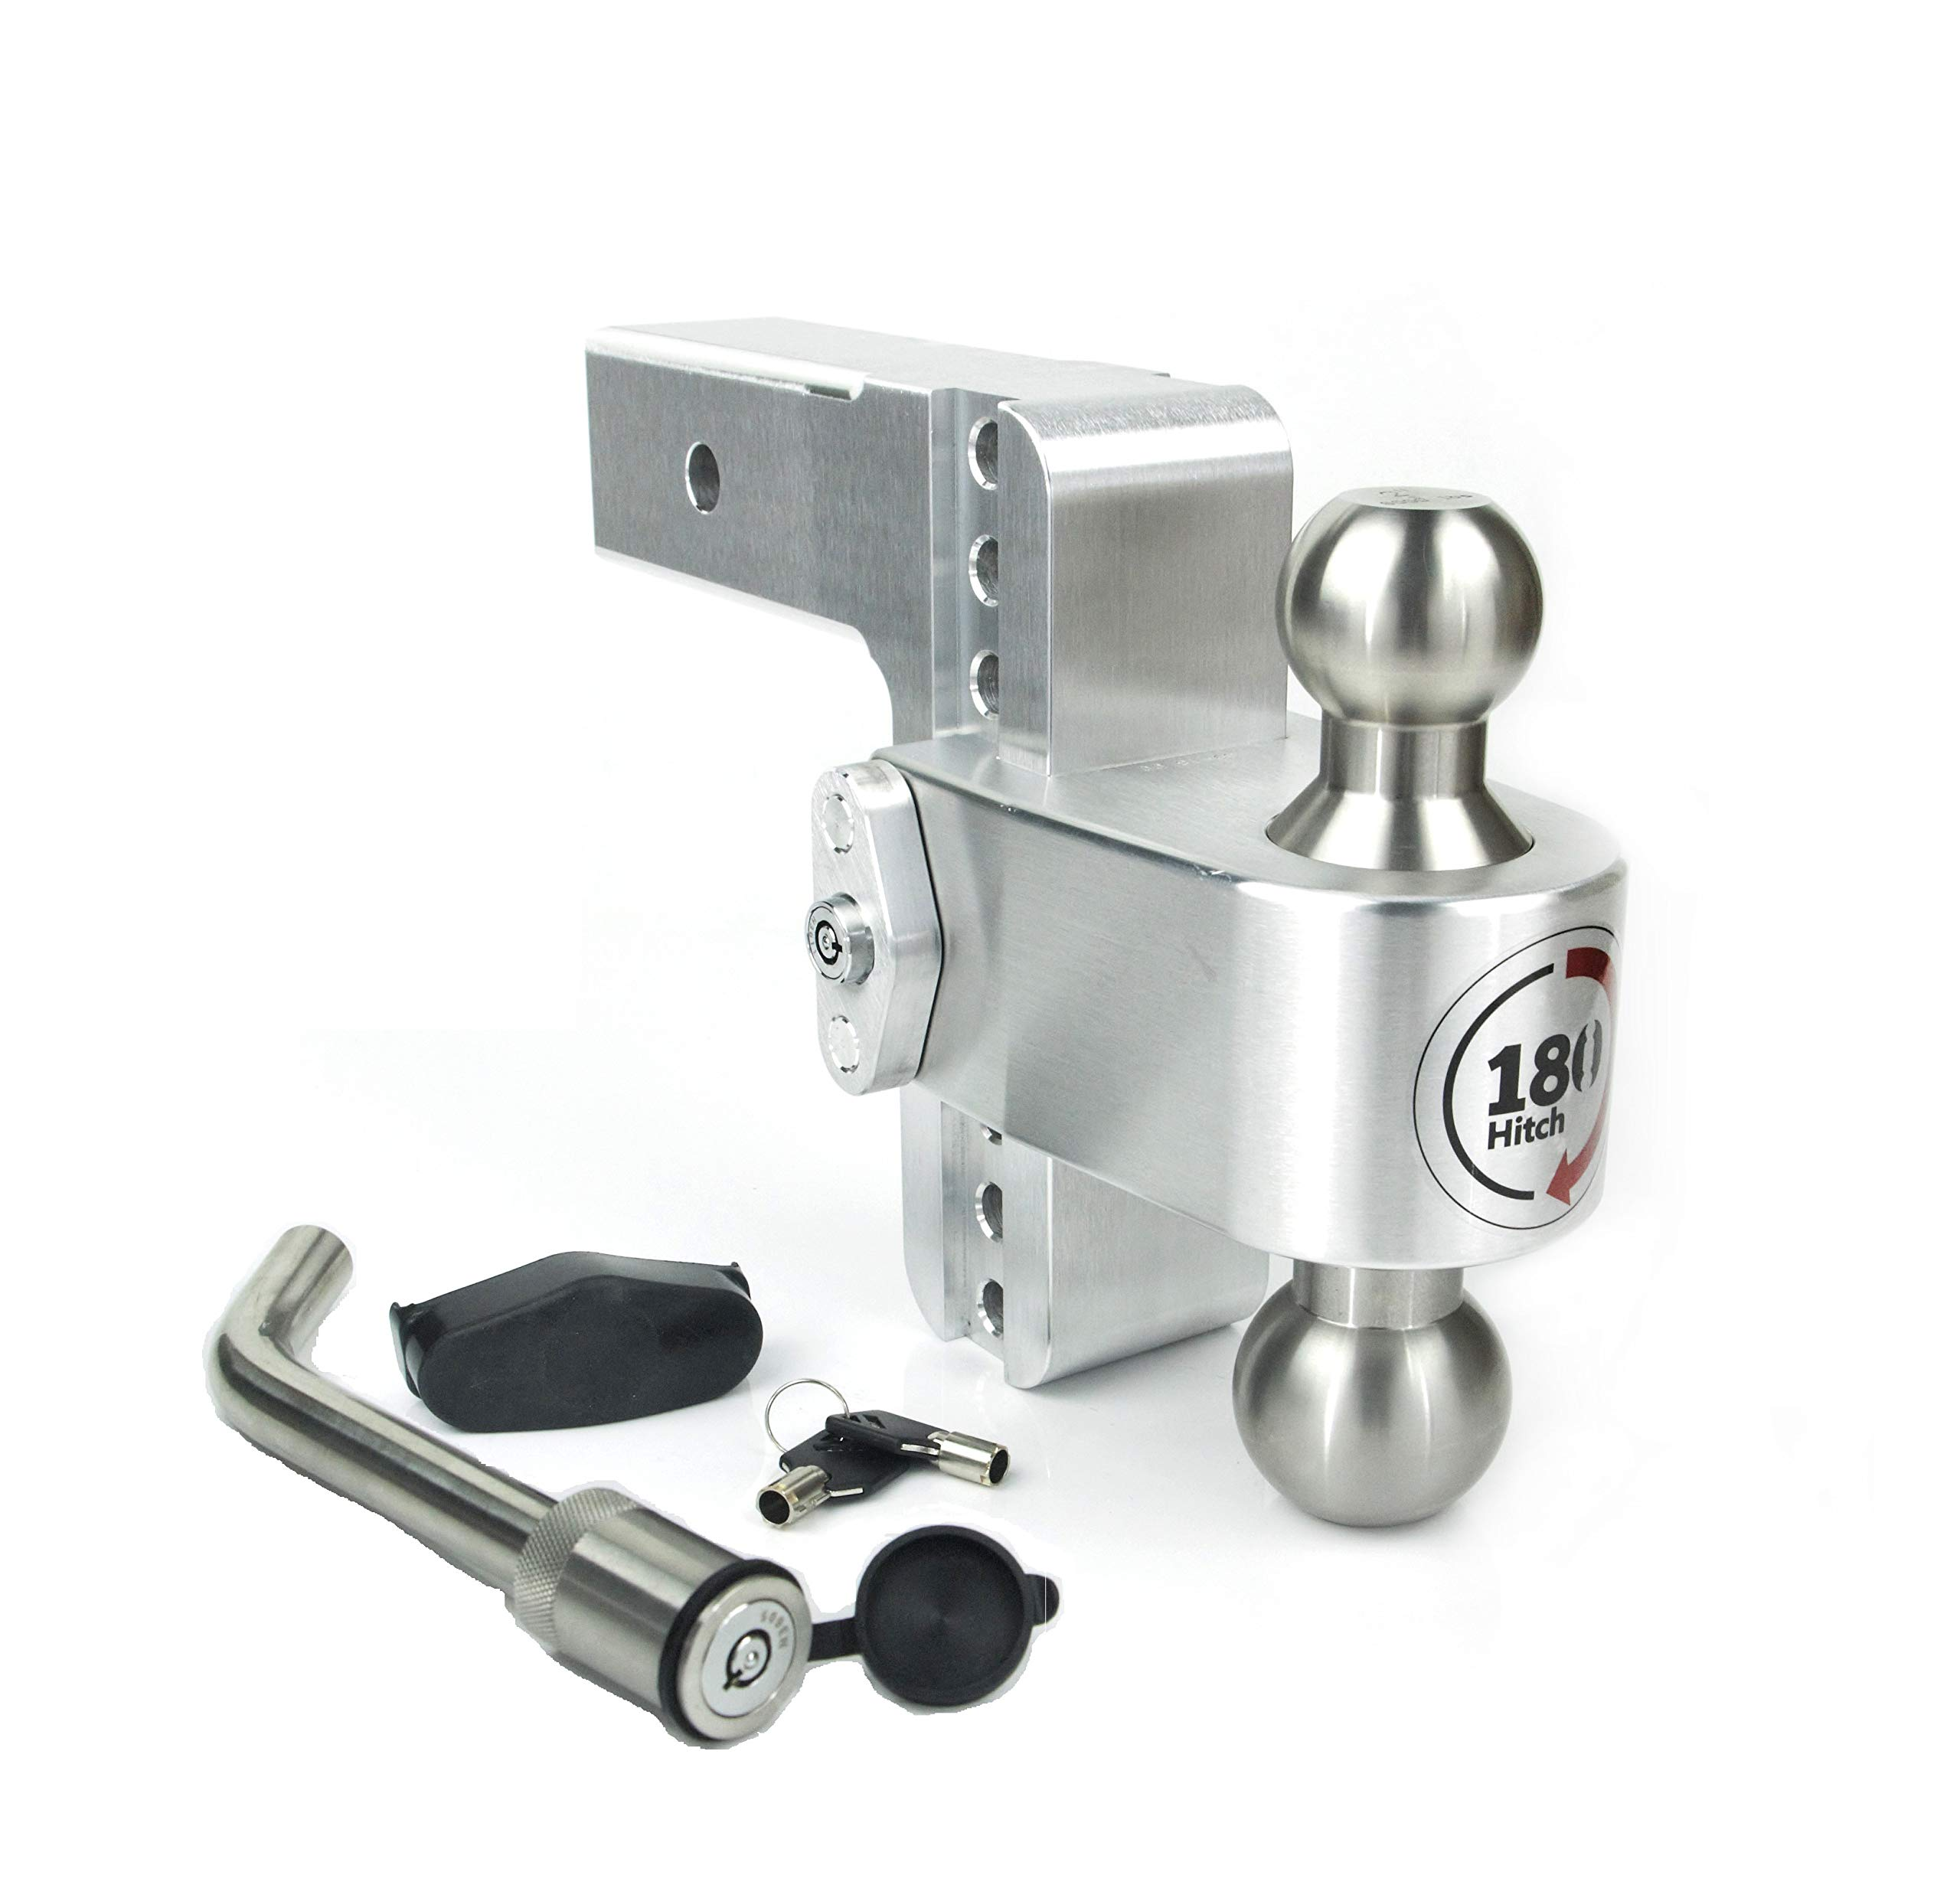 Weigh Safe LTB6-2.5-KA, 6'' Drop 180 Hitch w/ 2.5'' Shank/Shaft Adjustable Aluminum Trailer Hitch & Ball Mount, Stainless Steel Combo Ball (2'' & 2-5/16''), Keyed Alike Key Lock Hitch Pin by Weigh Safe